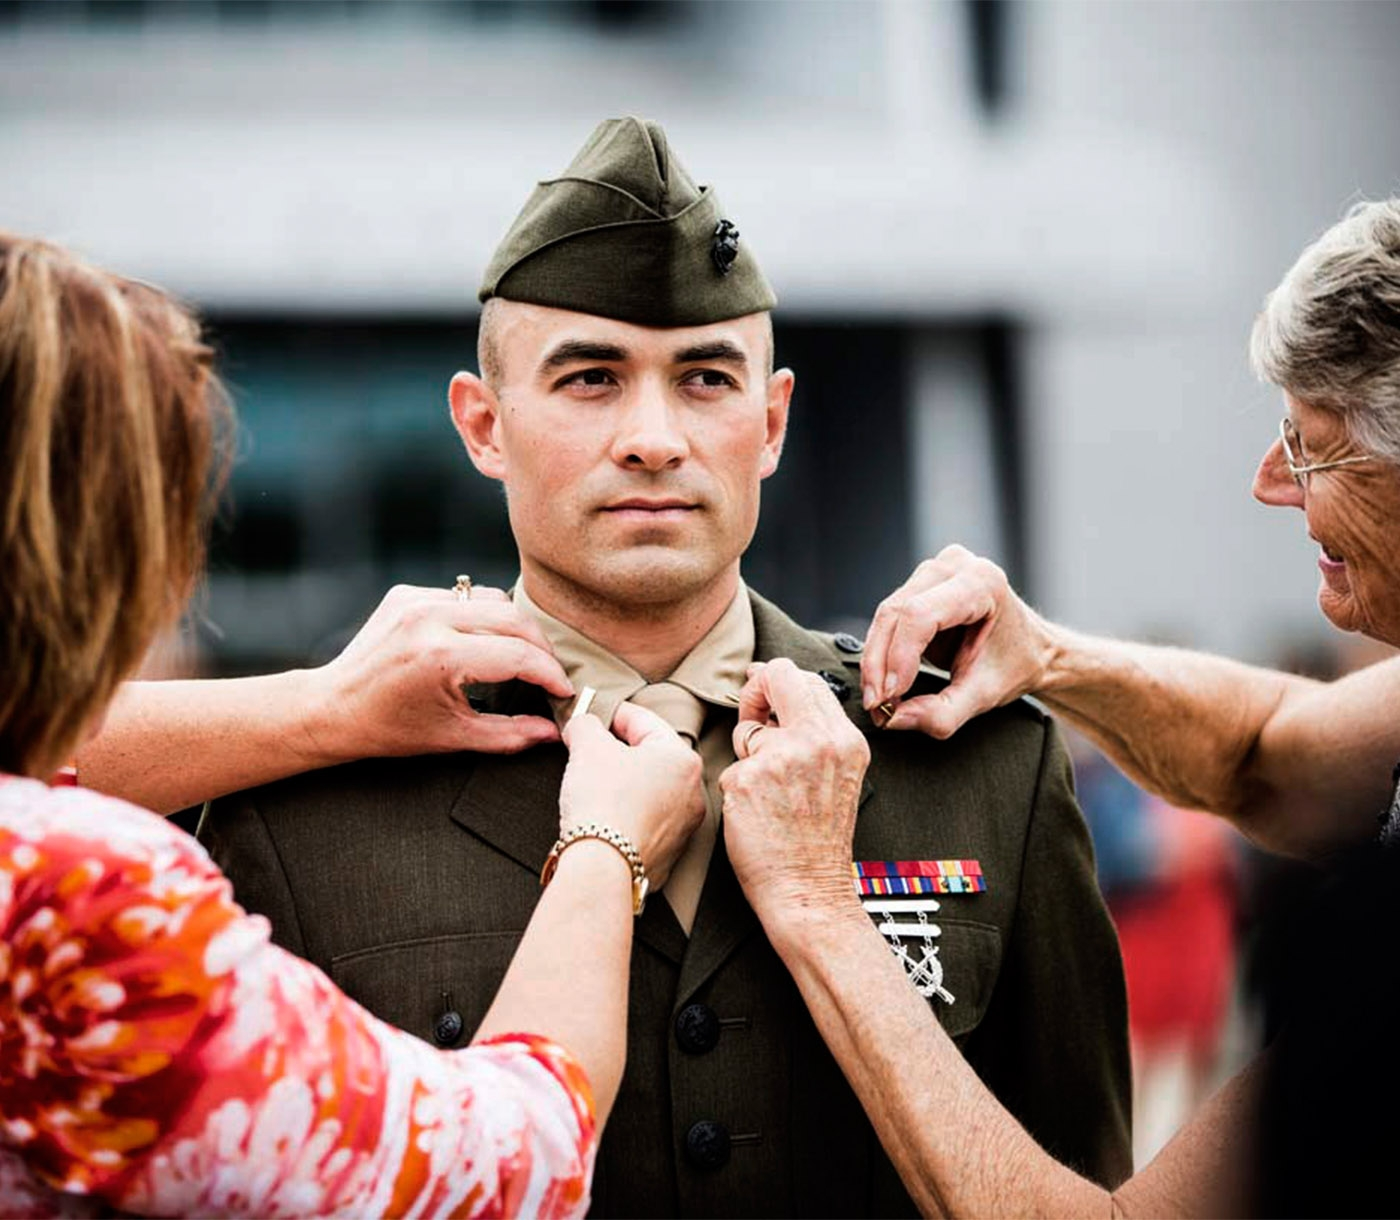 Marine receiving pins